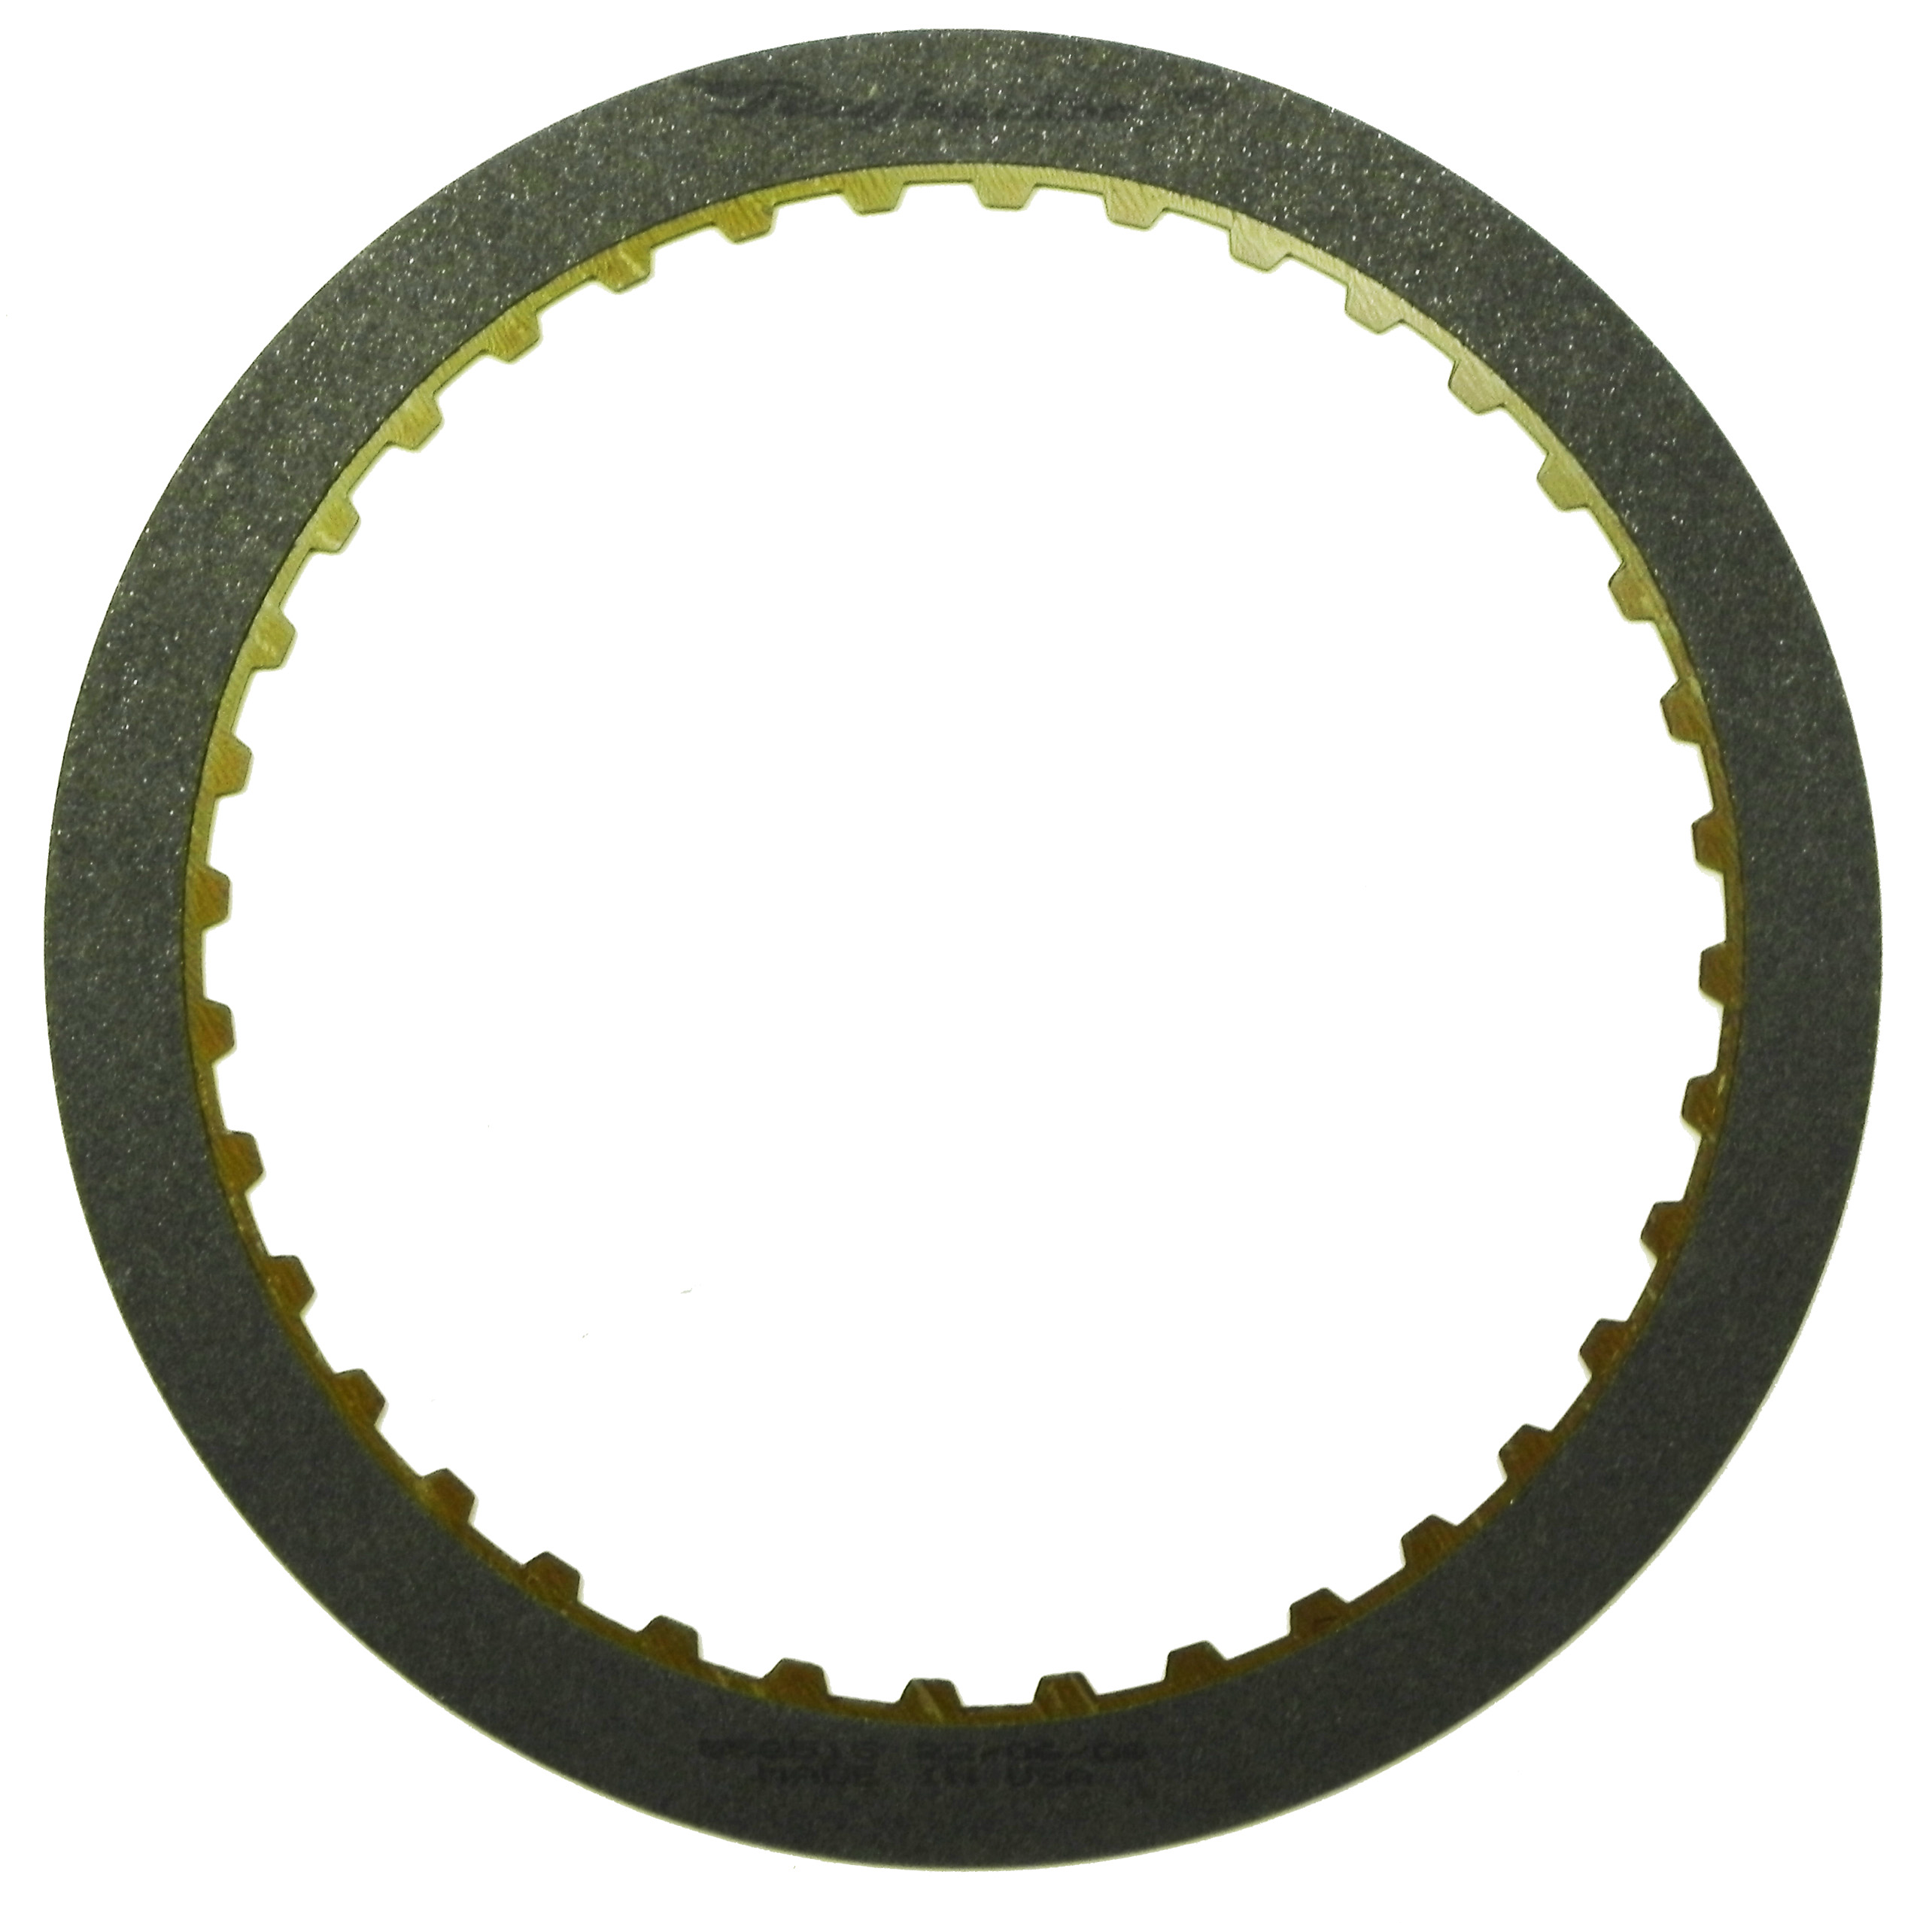 6F50, 6F55, 6T70, 6T75 High Energy Friction Clutch Plate